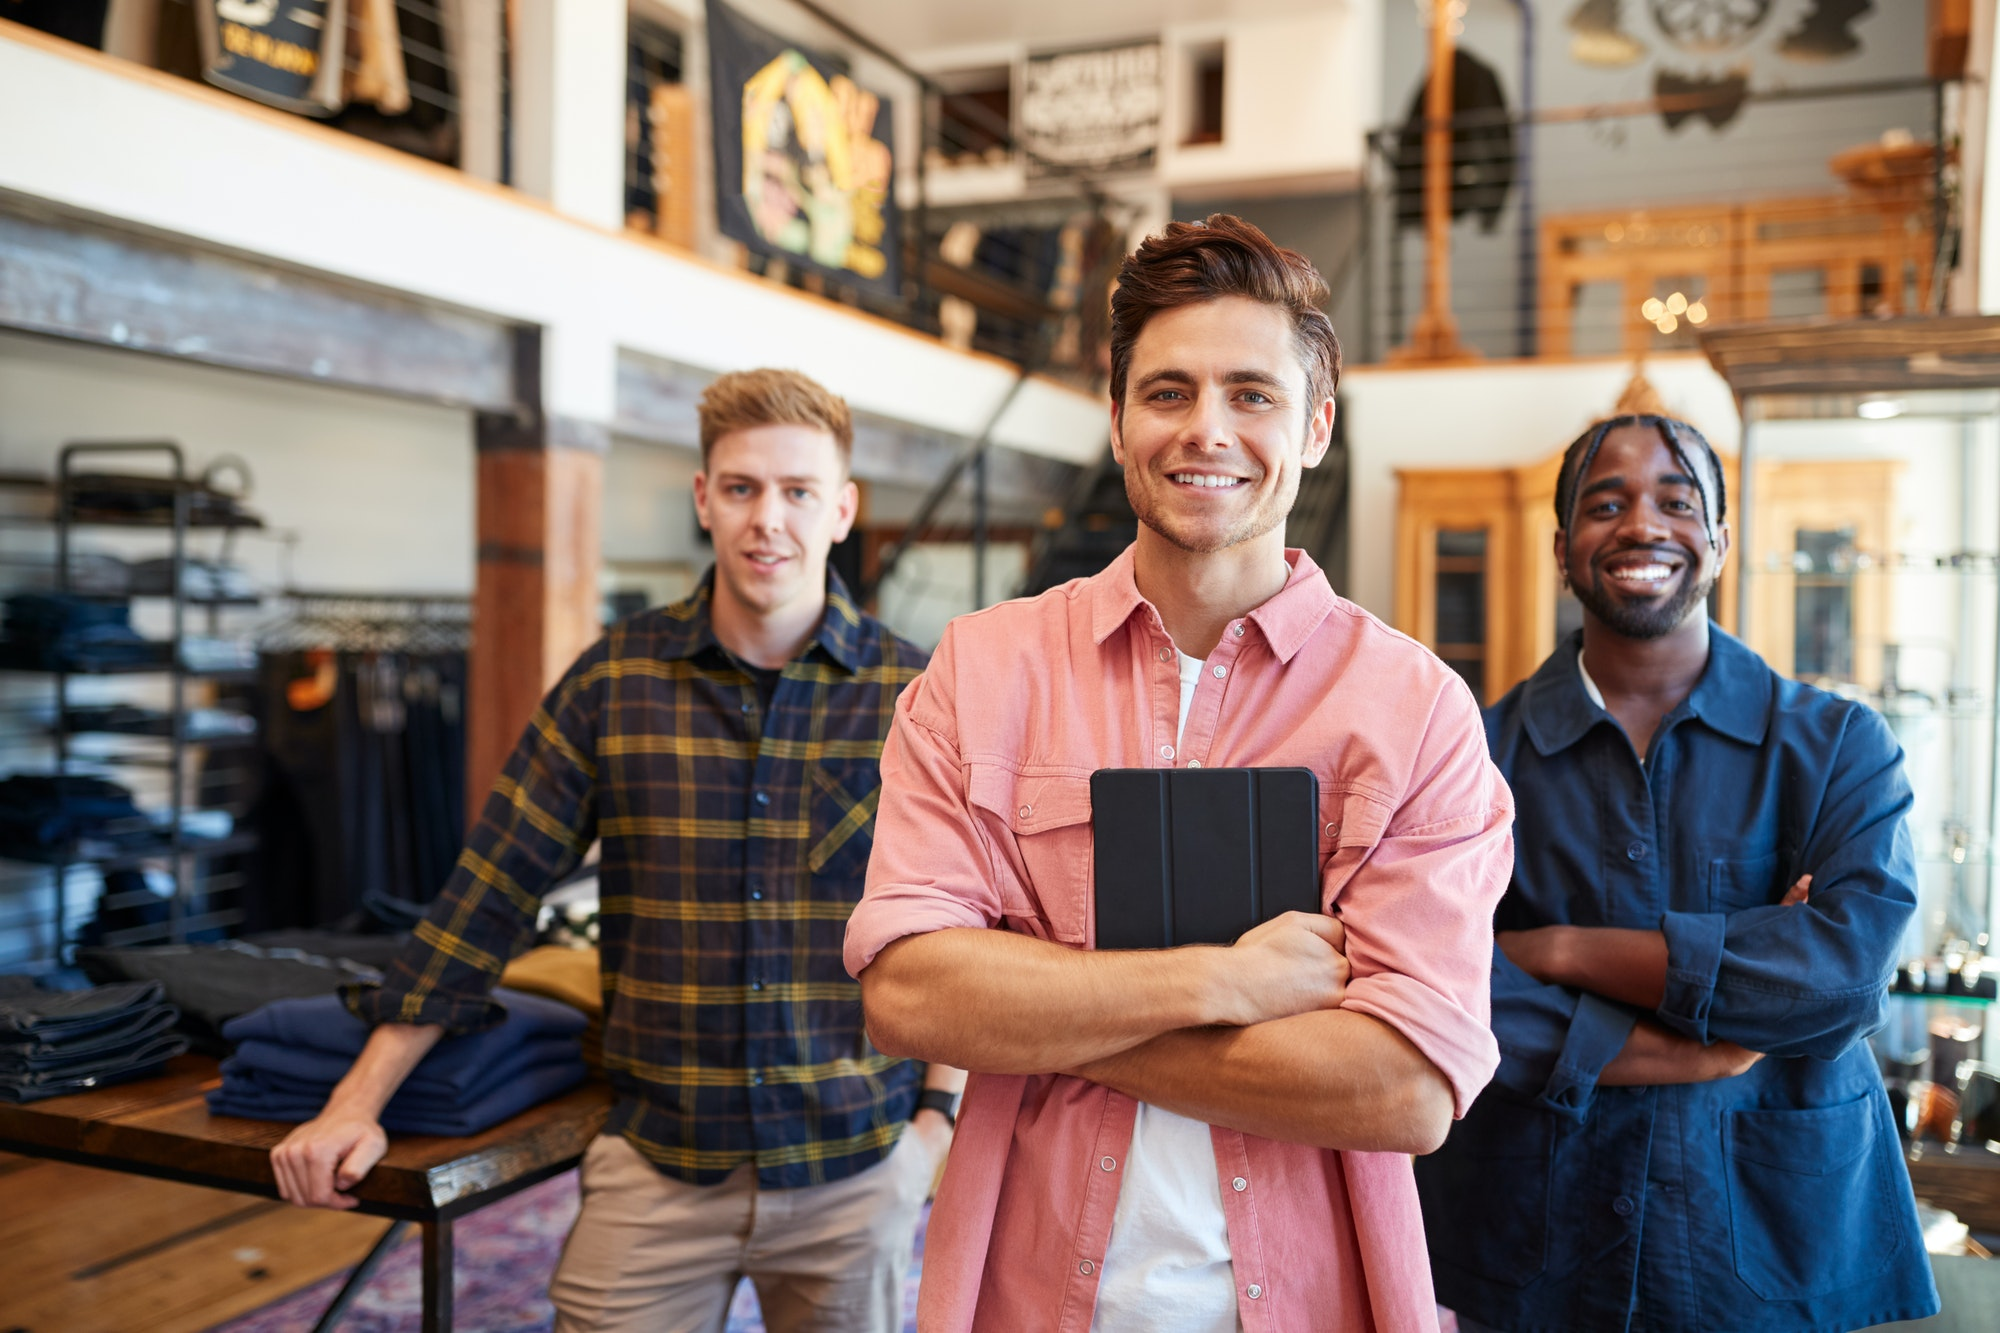 Portrait Of Smiling Multi-Cultural Male Sales Team In Fashion Store In Front Of Clothing Display